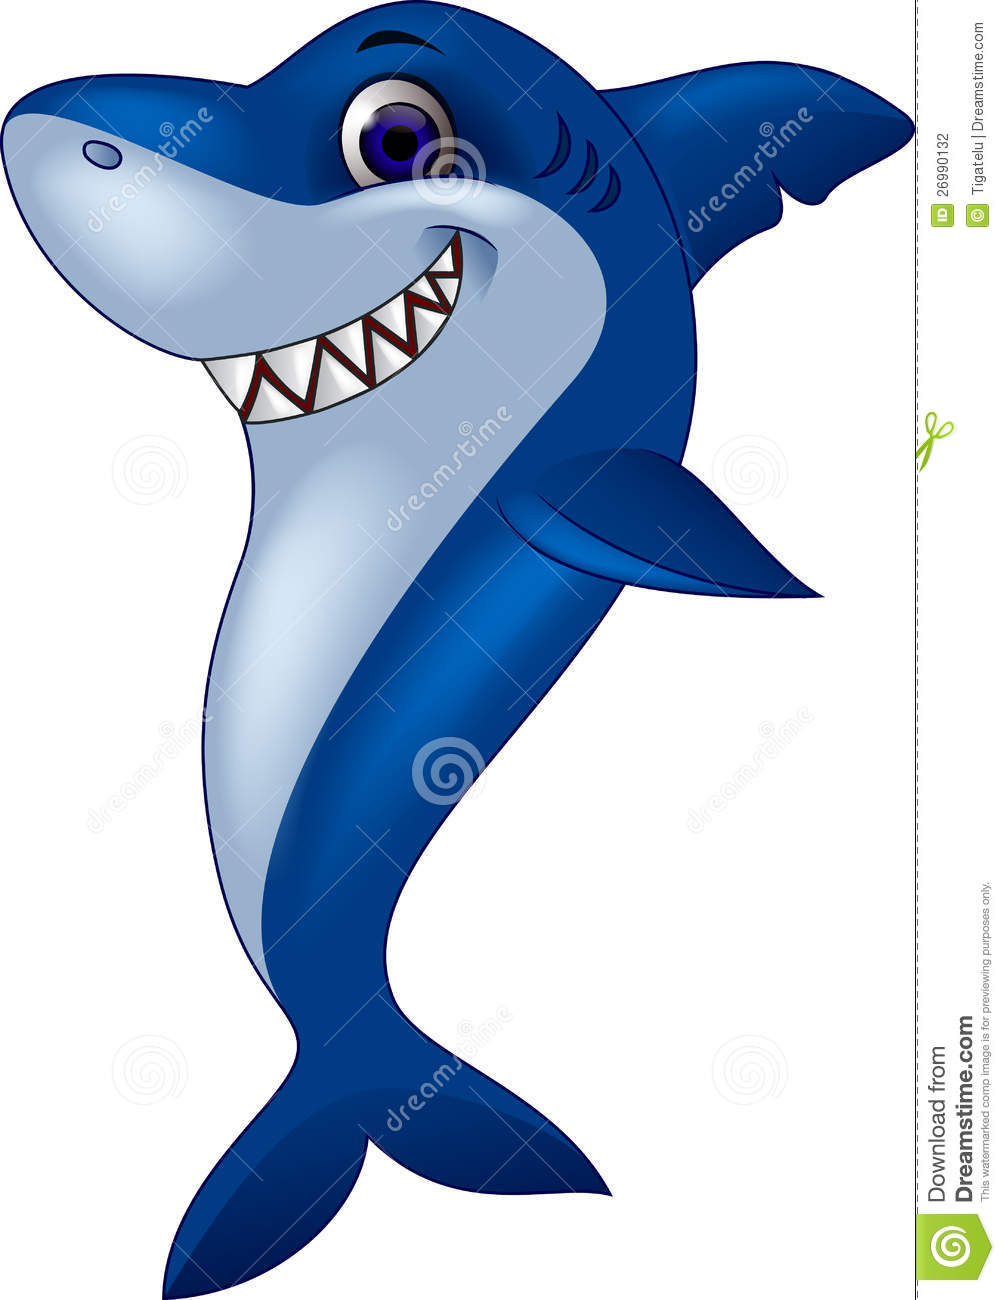 Funny Shark Cartoon Stock Photography - Image: 26990132